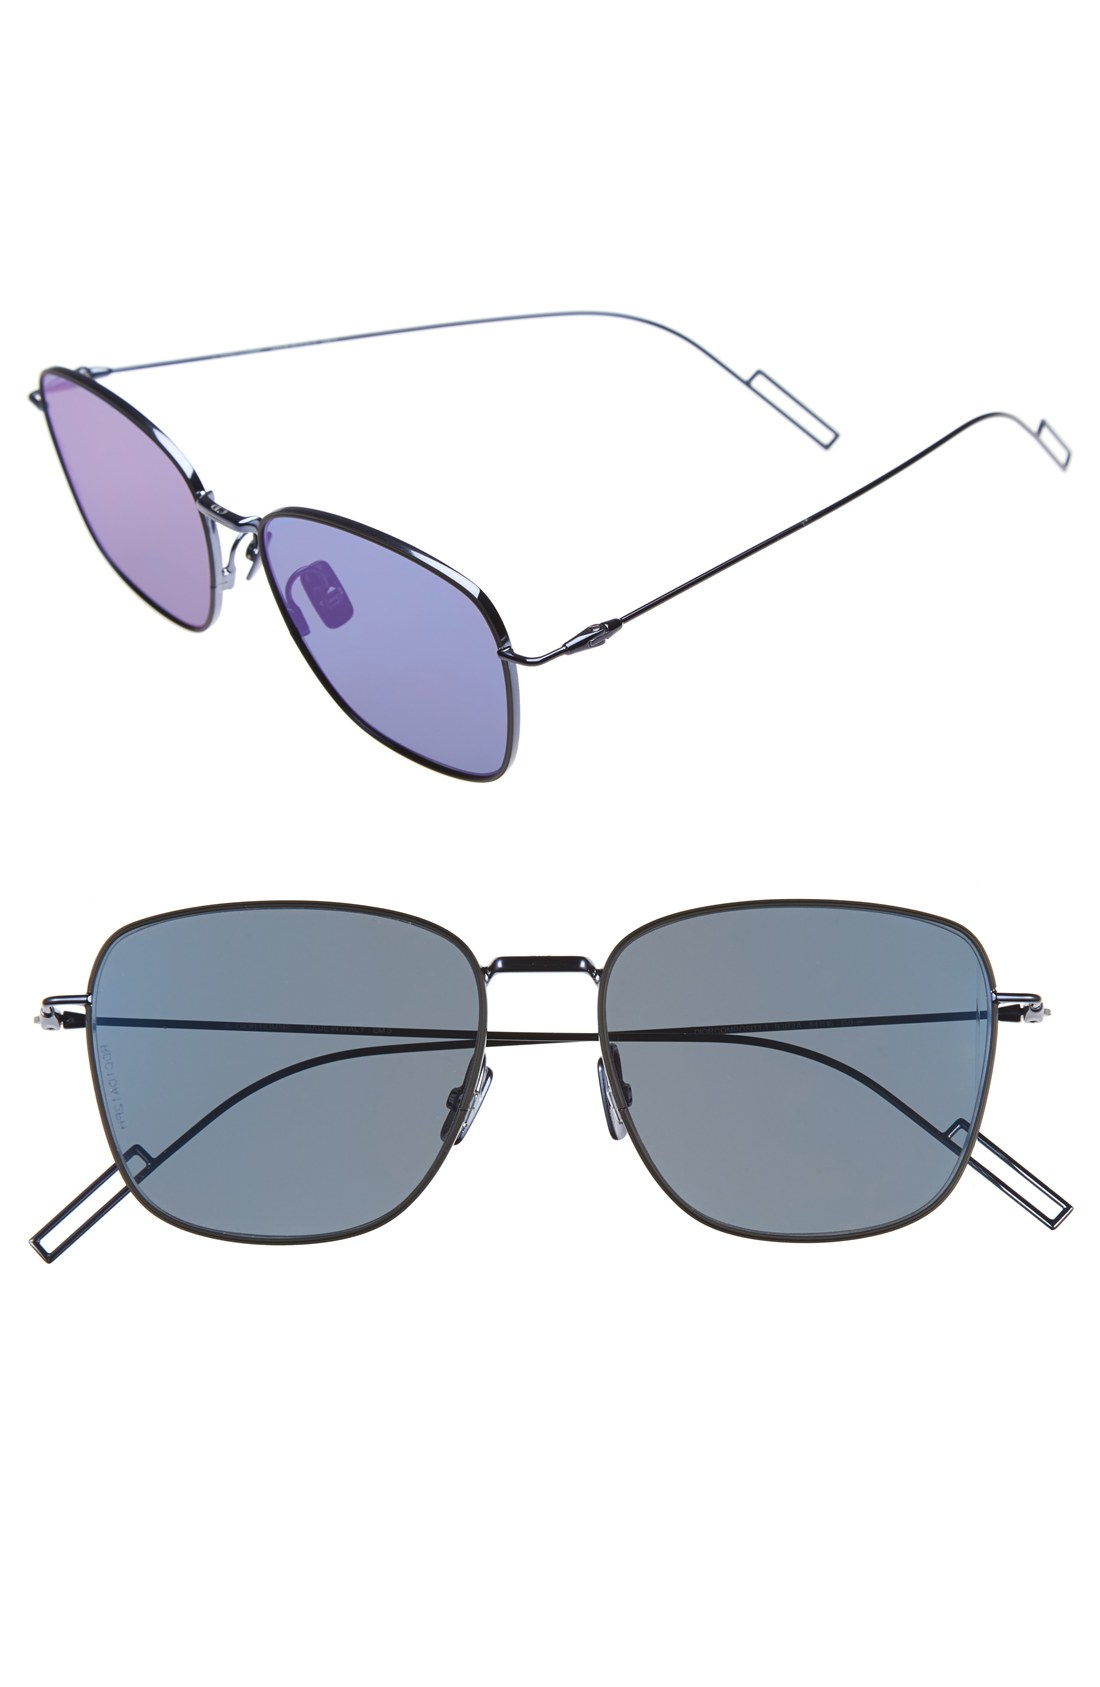 e4836cd224 Christian Dior  Composit 1.1S  54mm Metal Sunglasses